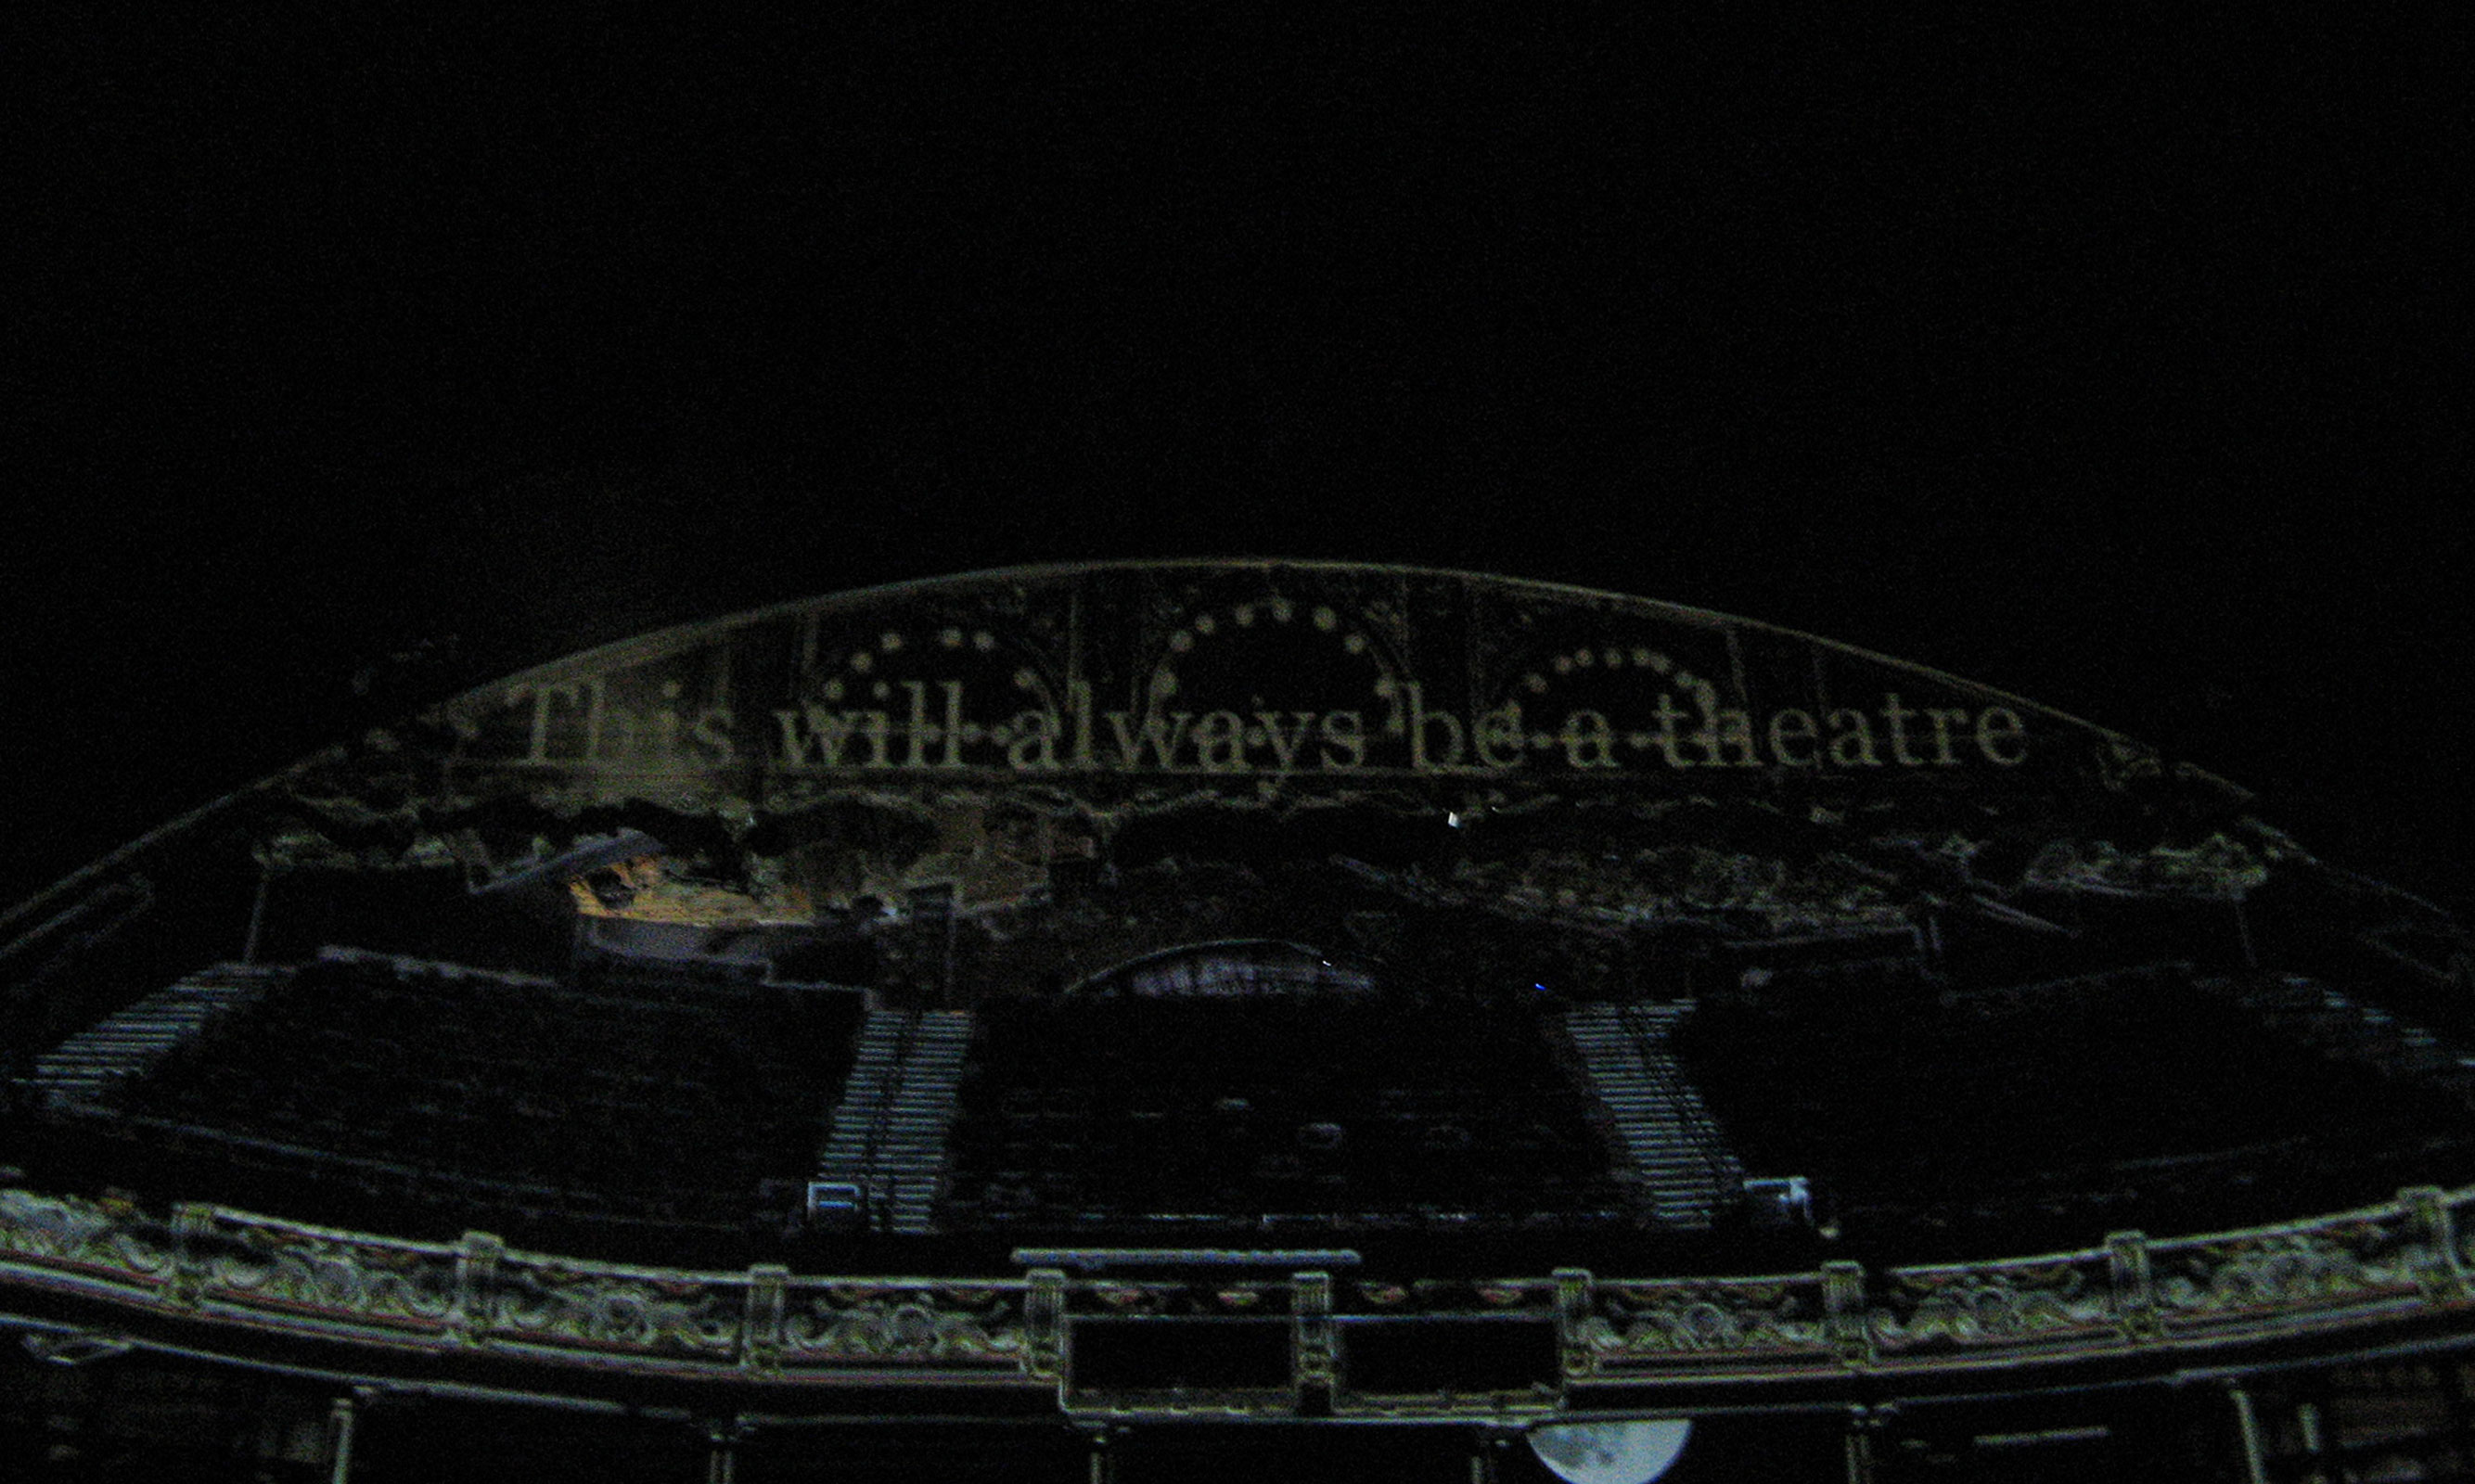 this-will-always-be-a-theatre